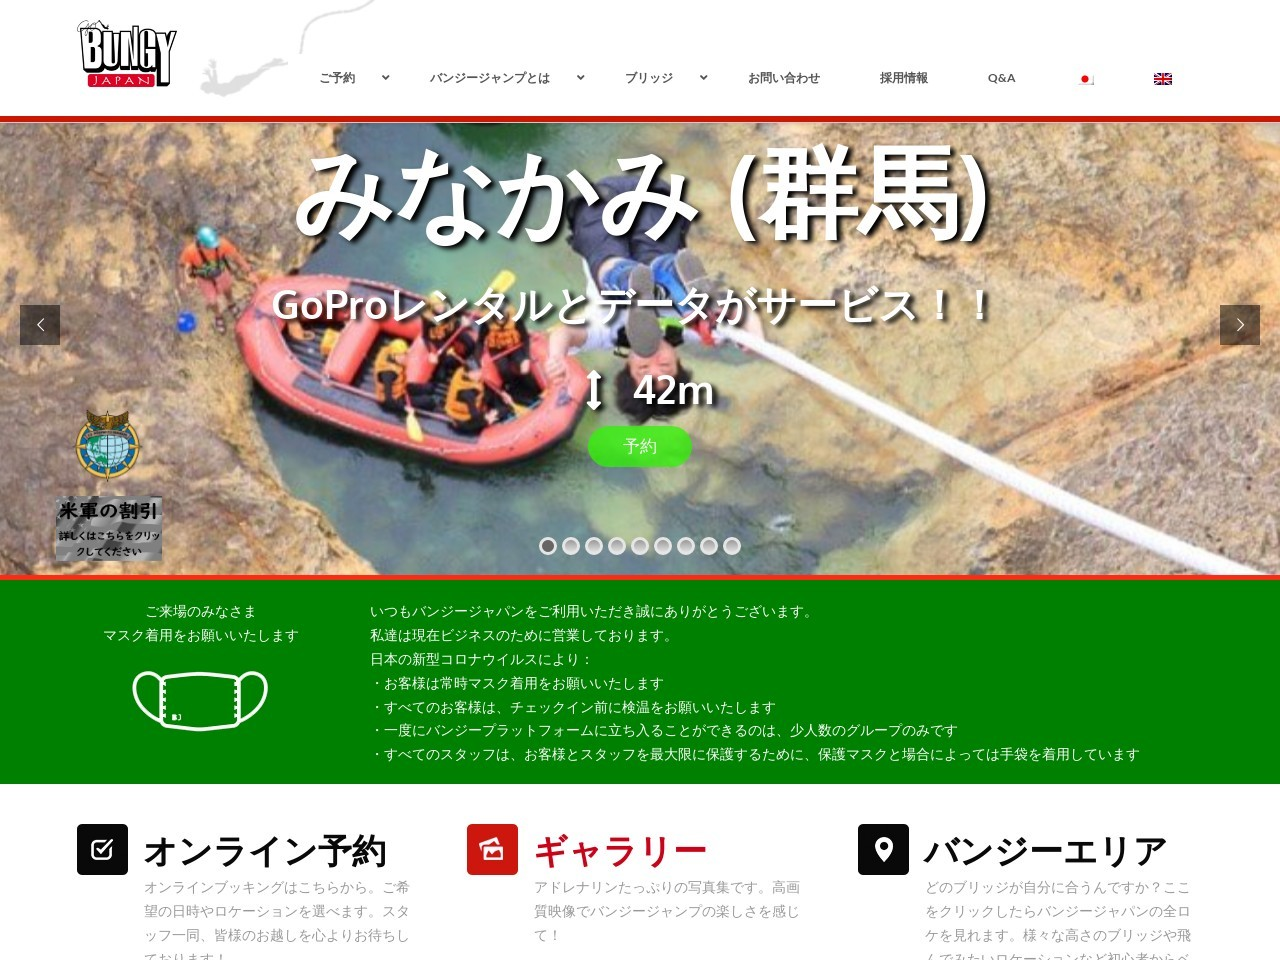 http://www.bungyjapan.com/ja/index.php/sites/locations/C47/